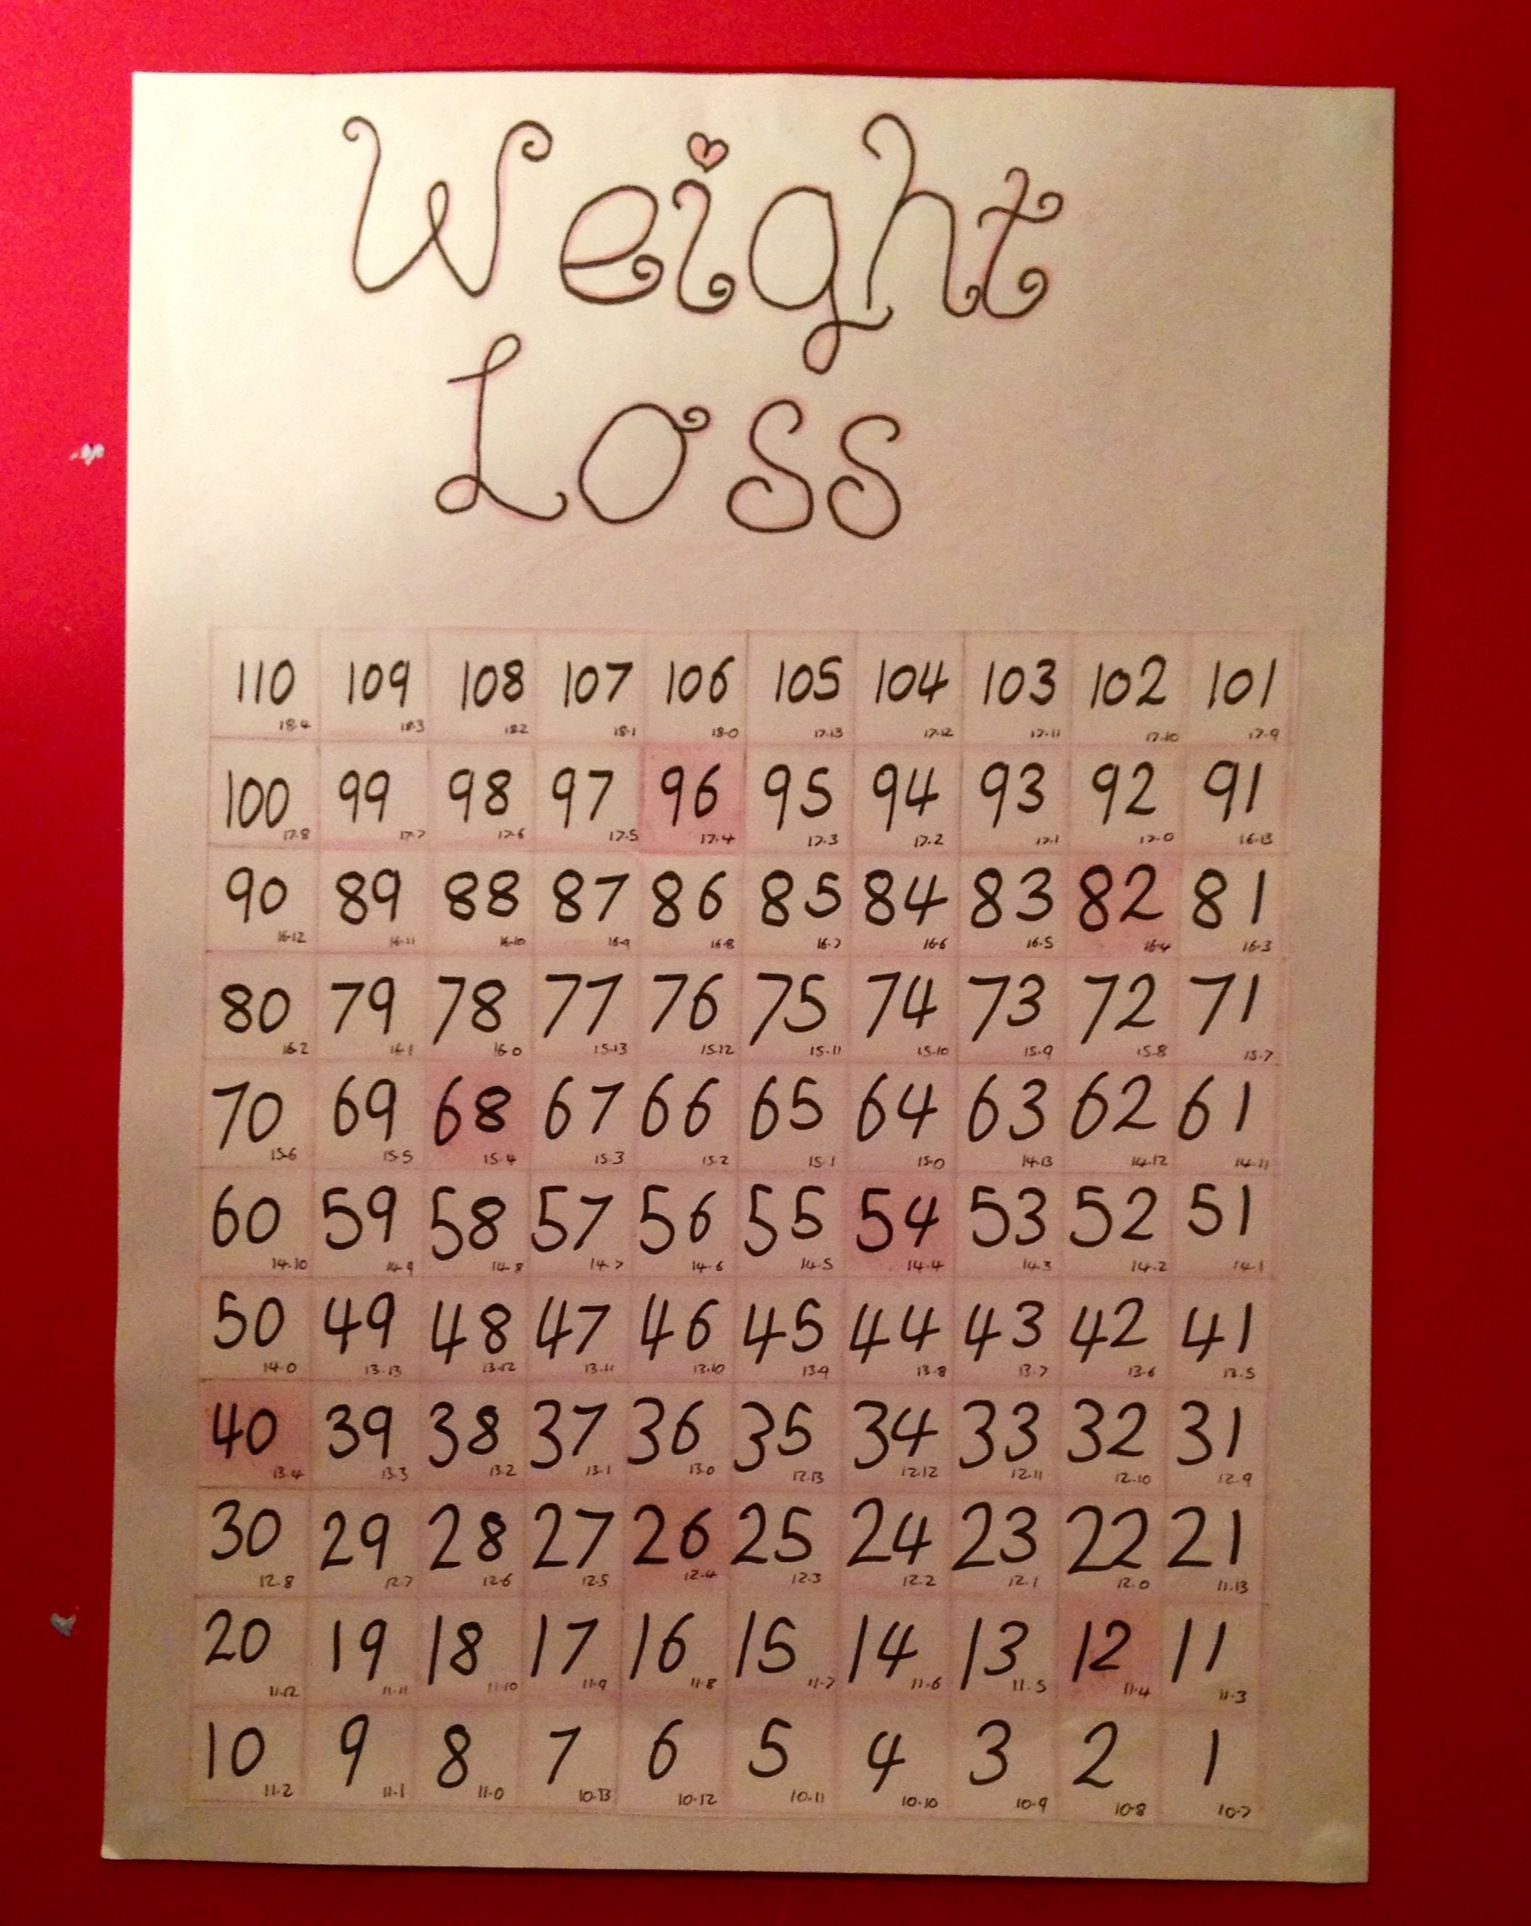 The weight loss chart is back weight loss pinterest weight the weight loss chart is back geenschuldenfo Gallery